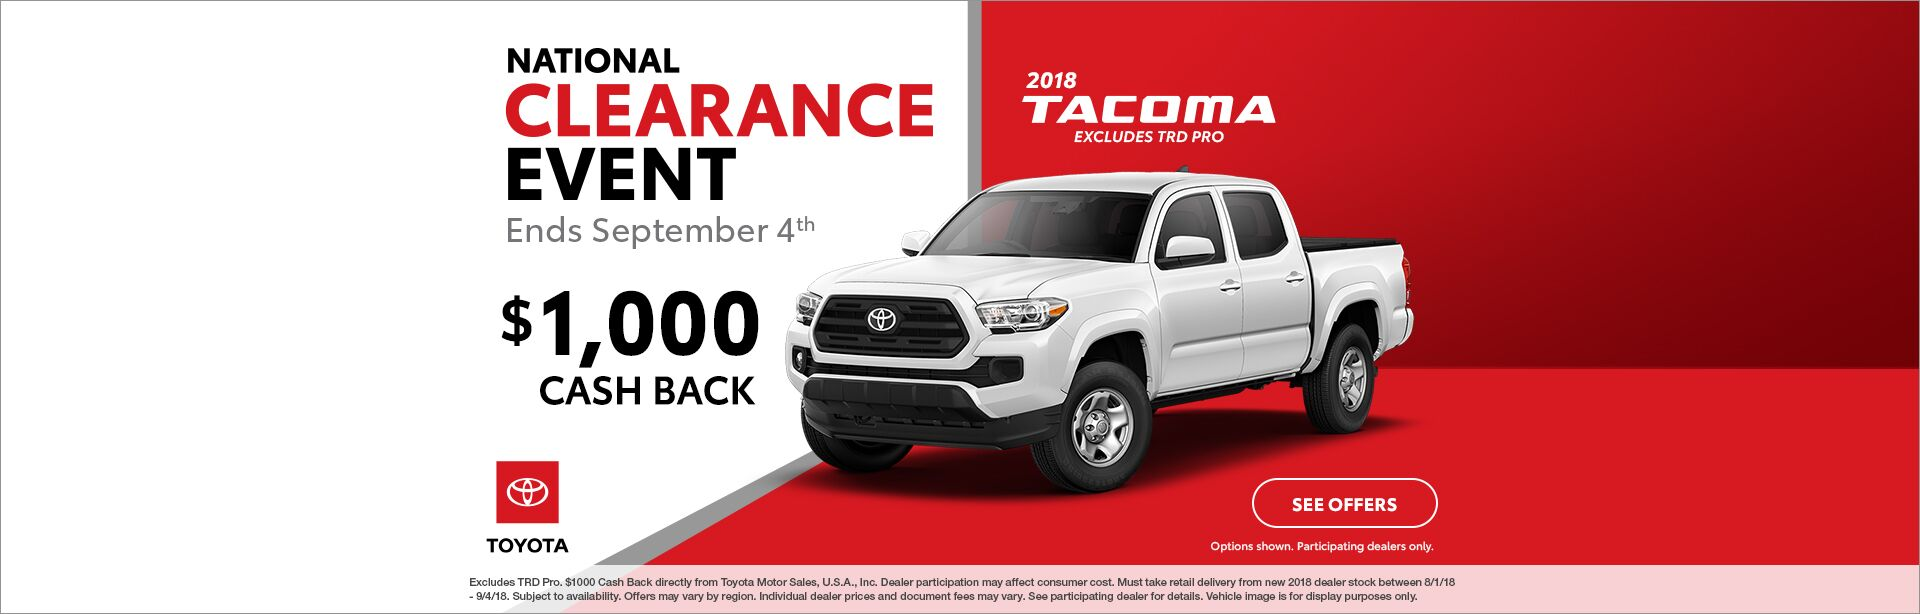 Tacoma Cash Back National Clearance Event 2018